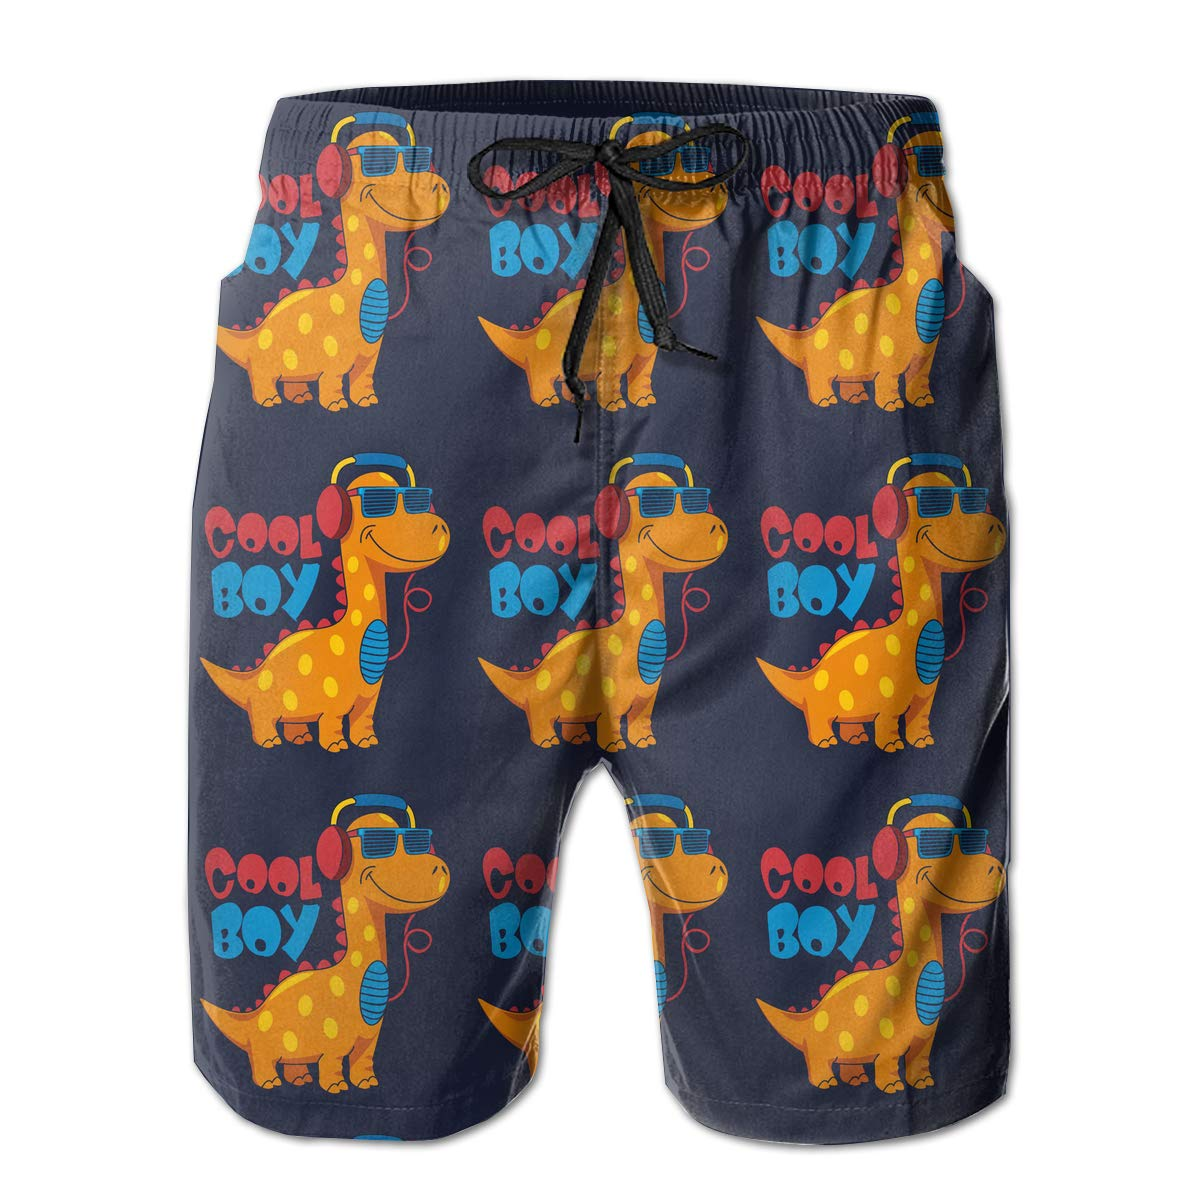 Mens Swim Trunk with Pockets,Cute Elephant,Summer Surf Quick Dry Beach Board Shorts Pants Bathing Suit